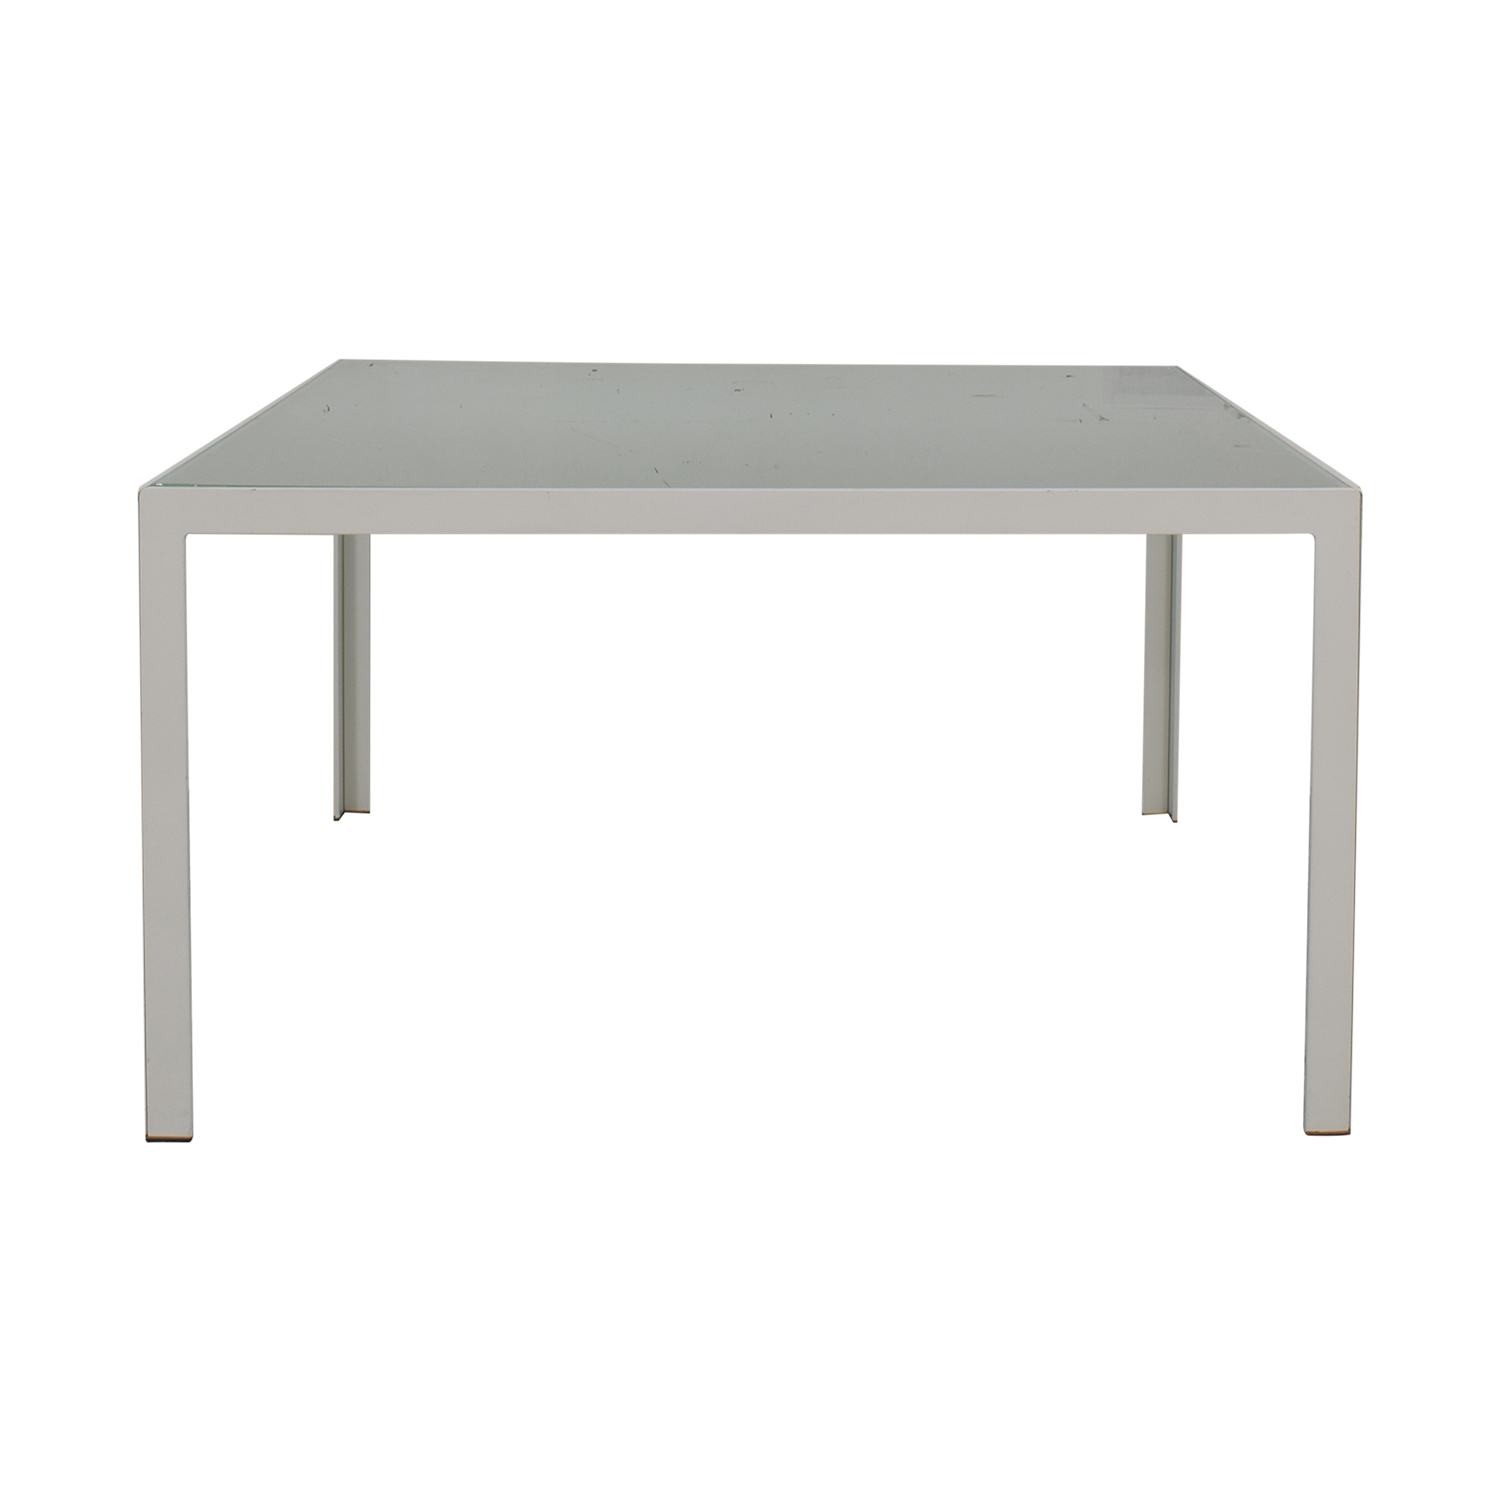 Monica Armani White and Glass Dining Table / Tables